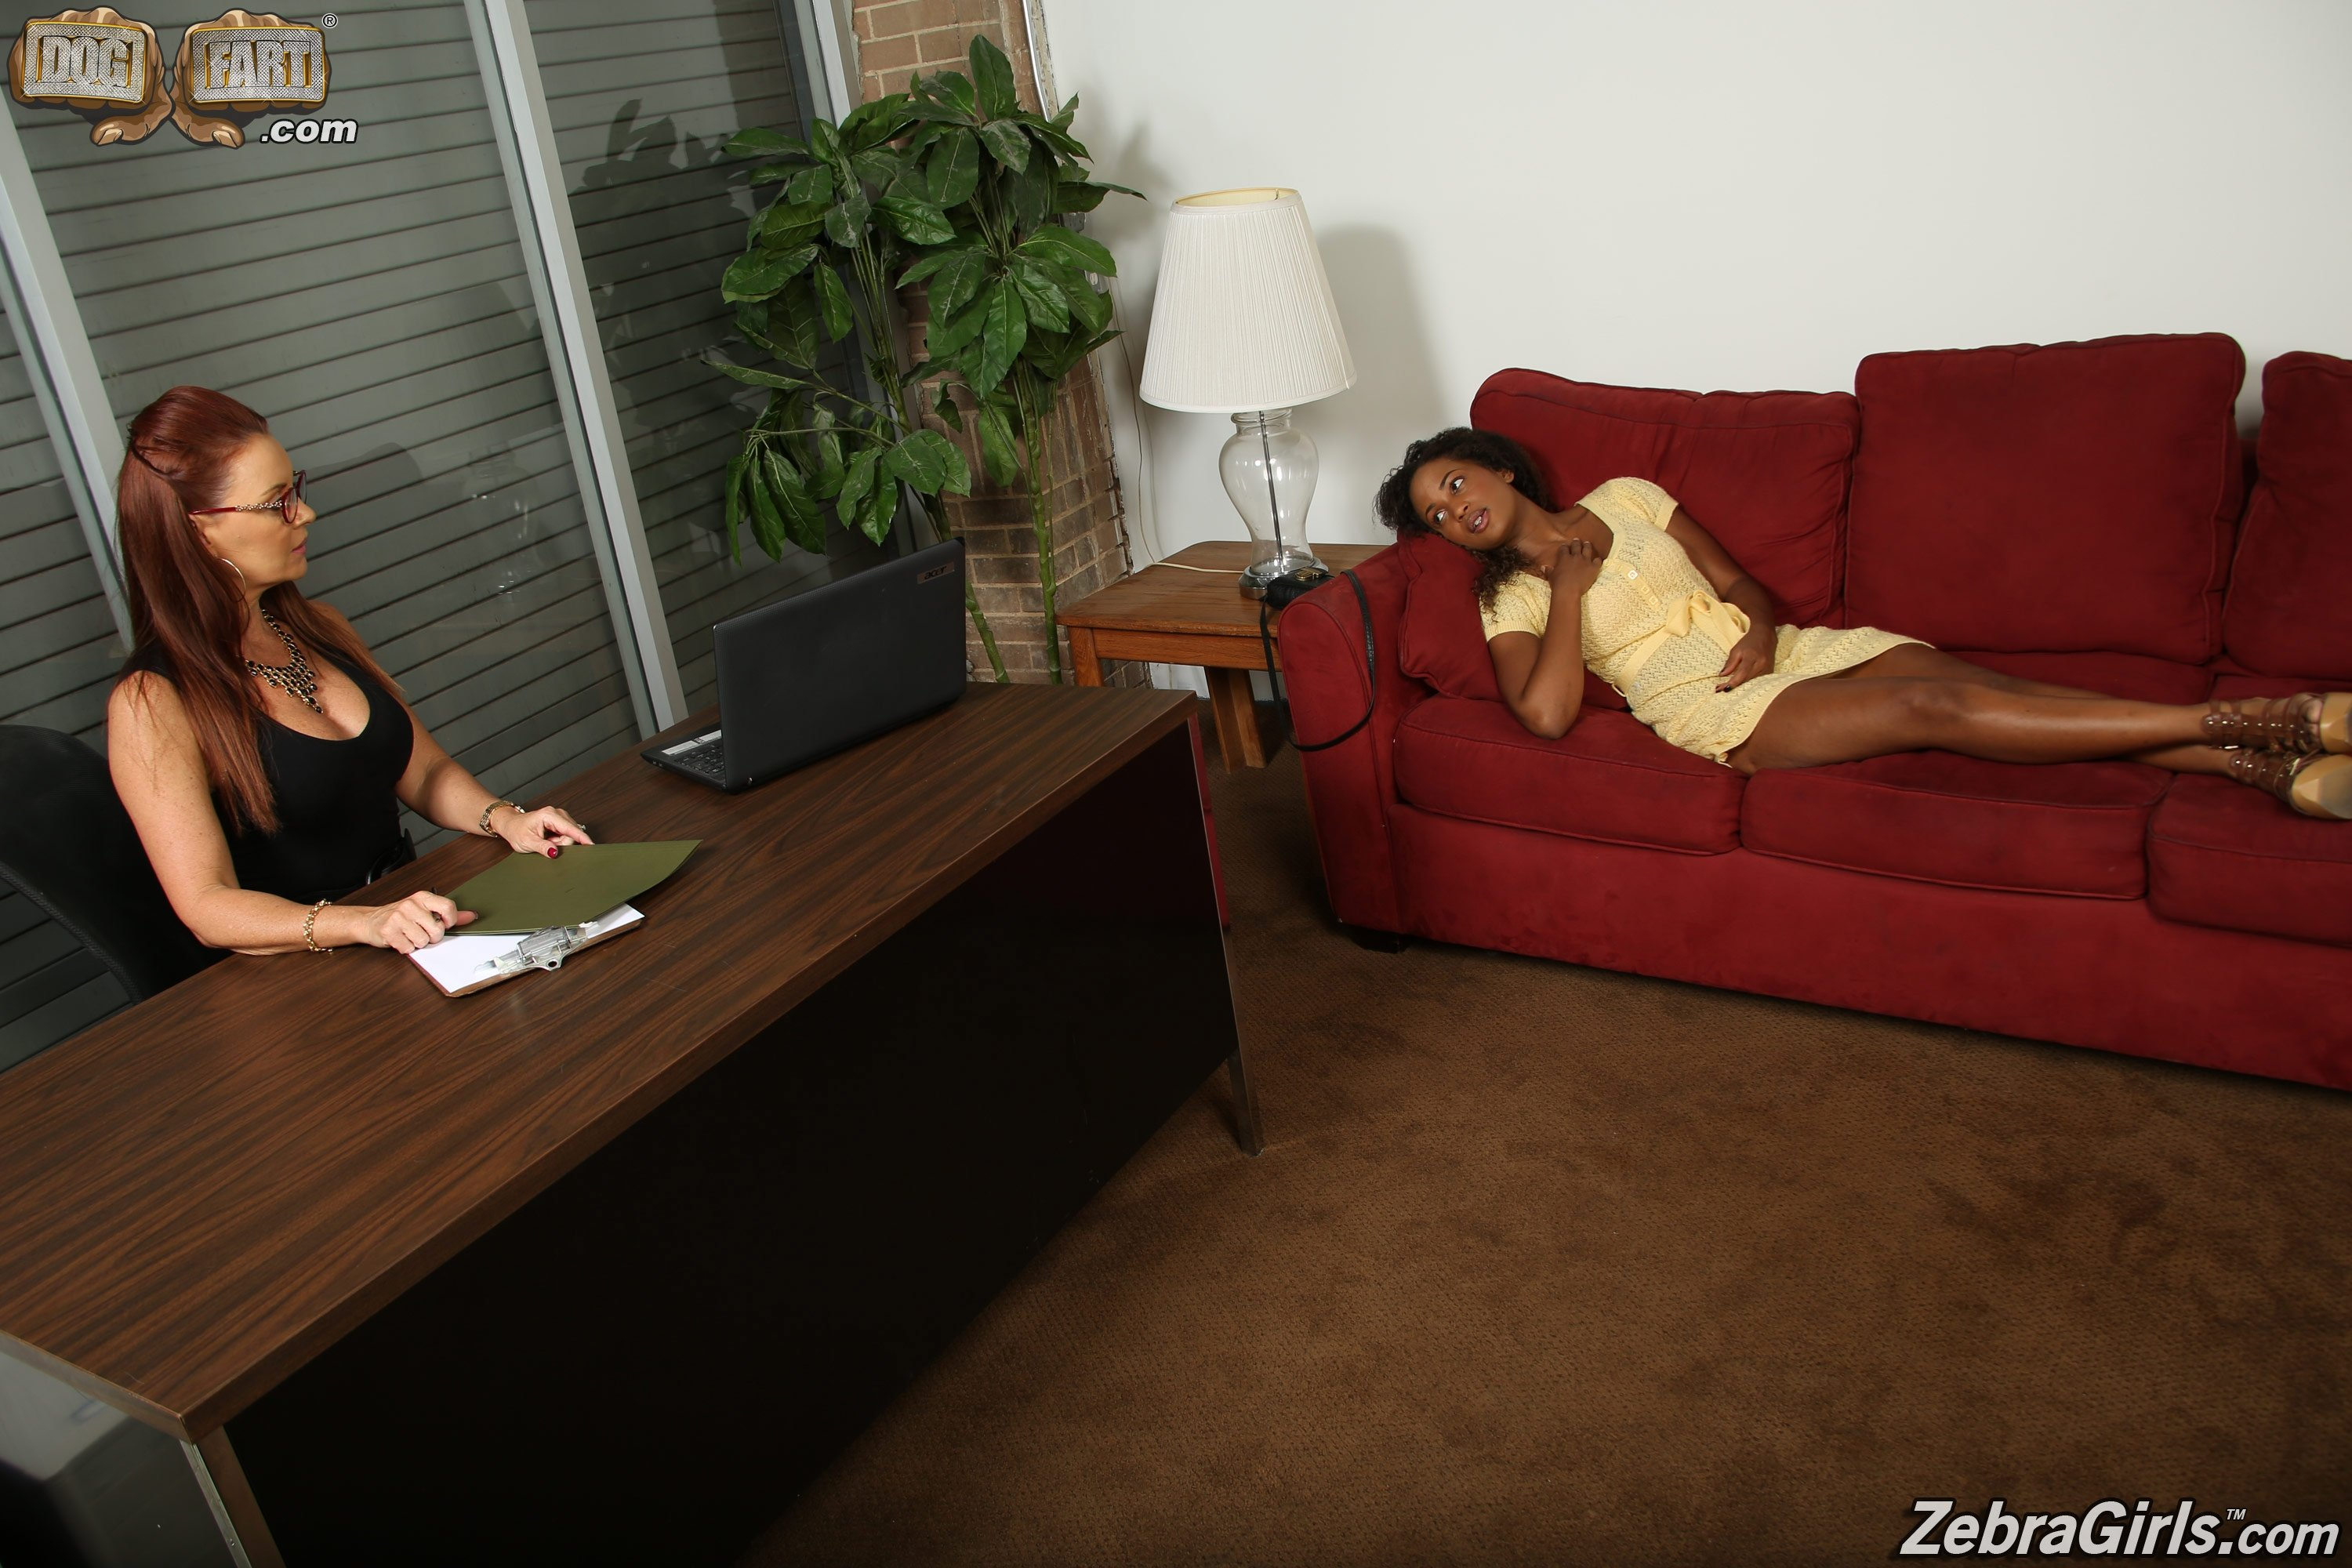 Analwife s wife hot milf party